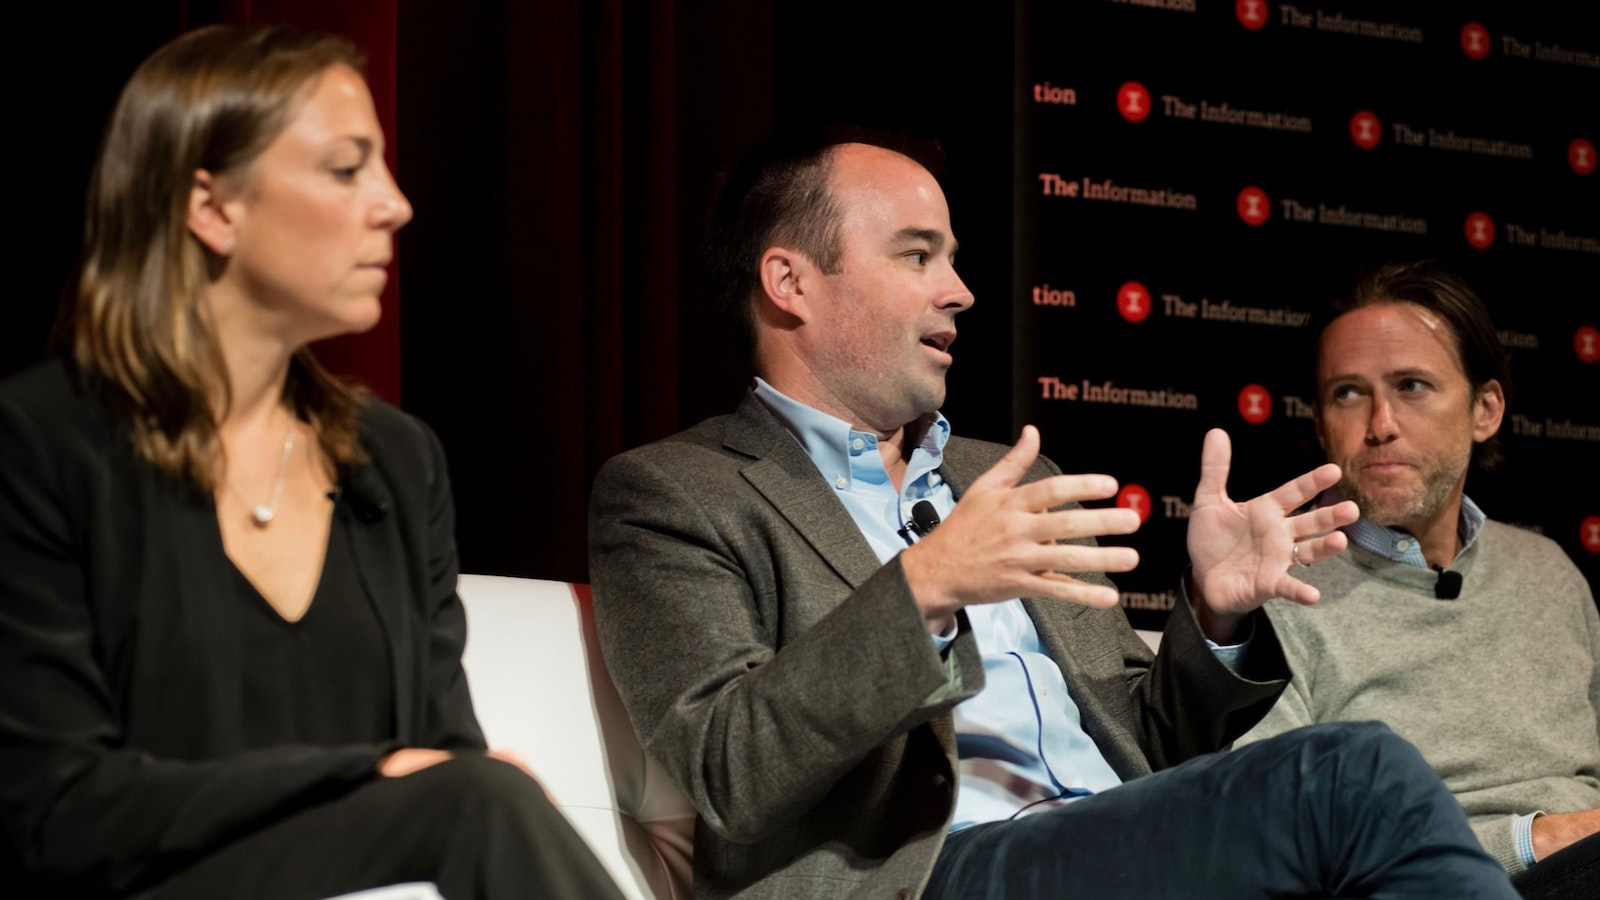 Lauren Cummings, Will Connolly and Scott Stanford appear on a panel at The Information's Subscriber Summit. Photo by Angie Silvy.